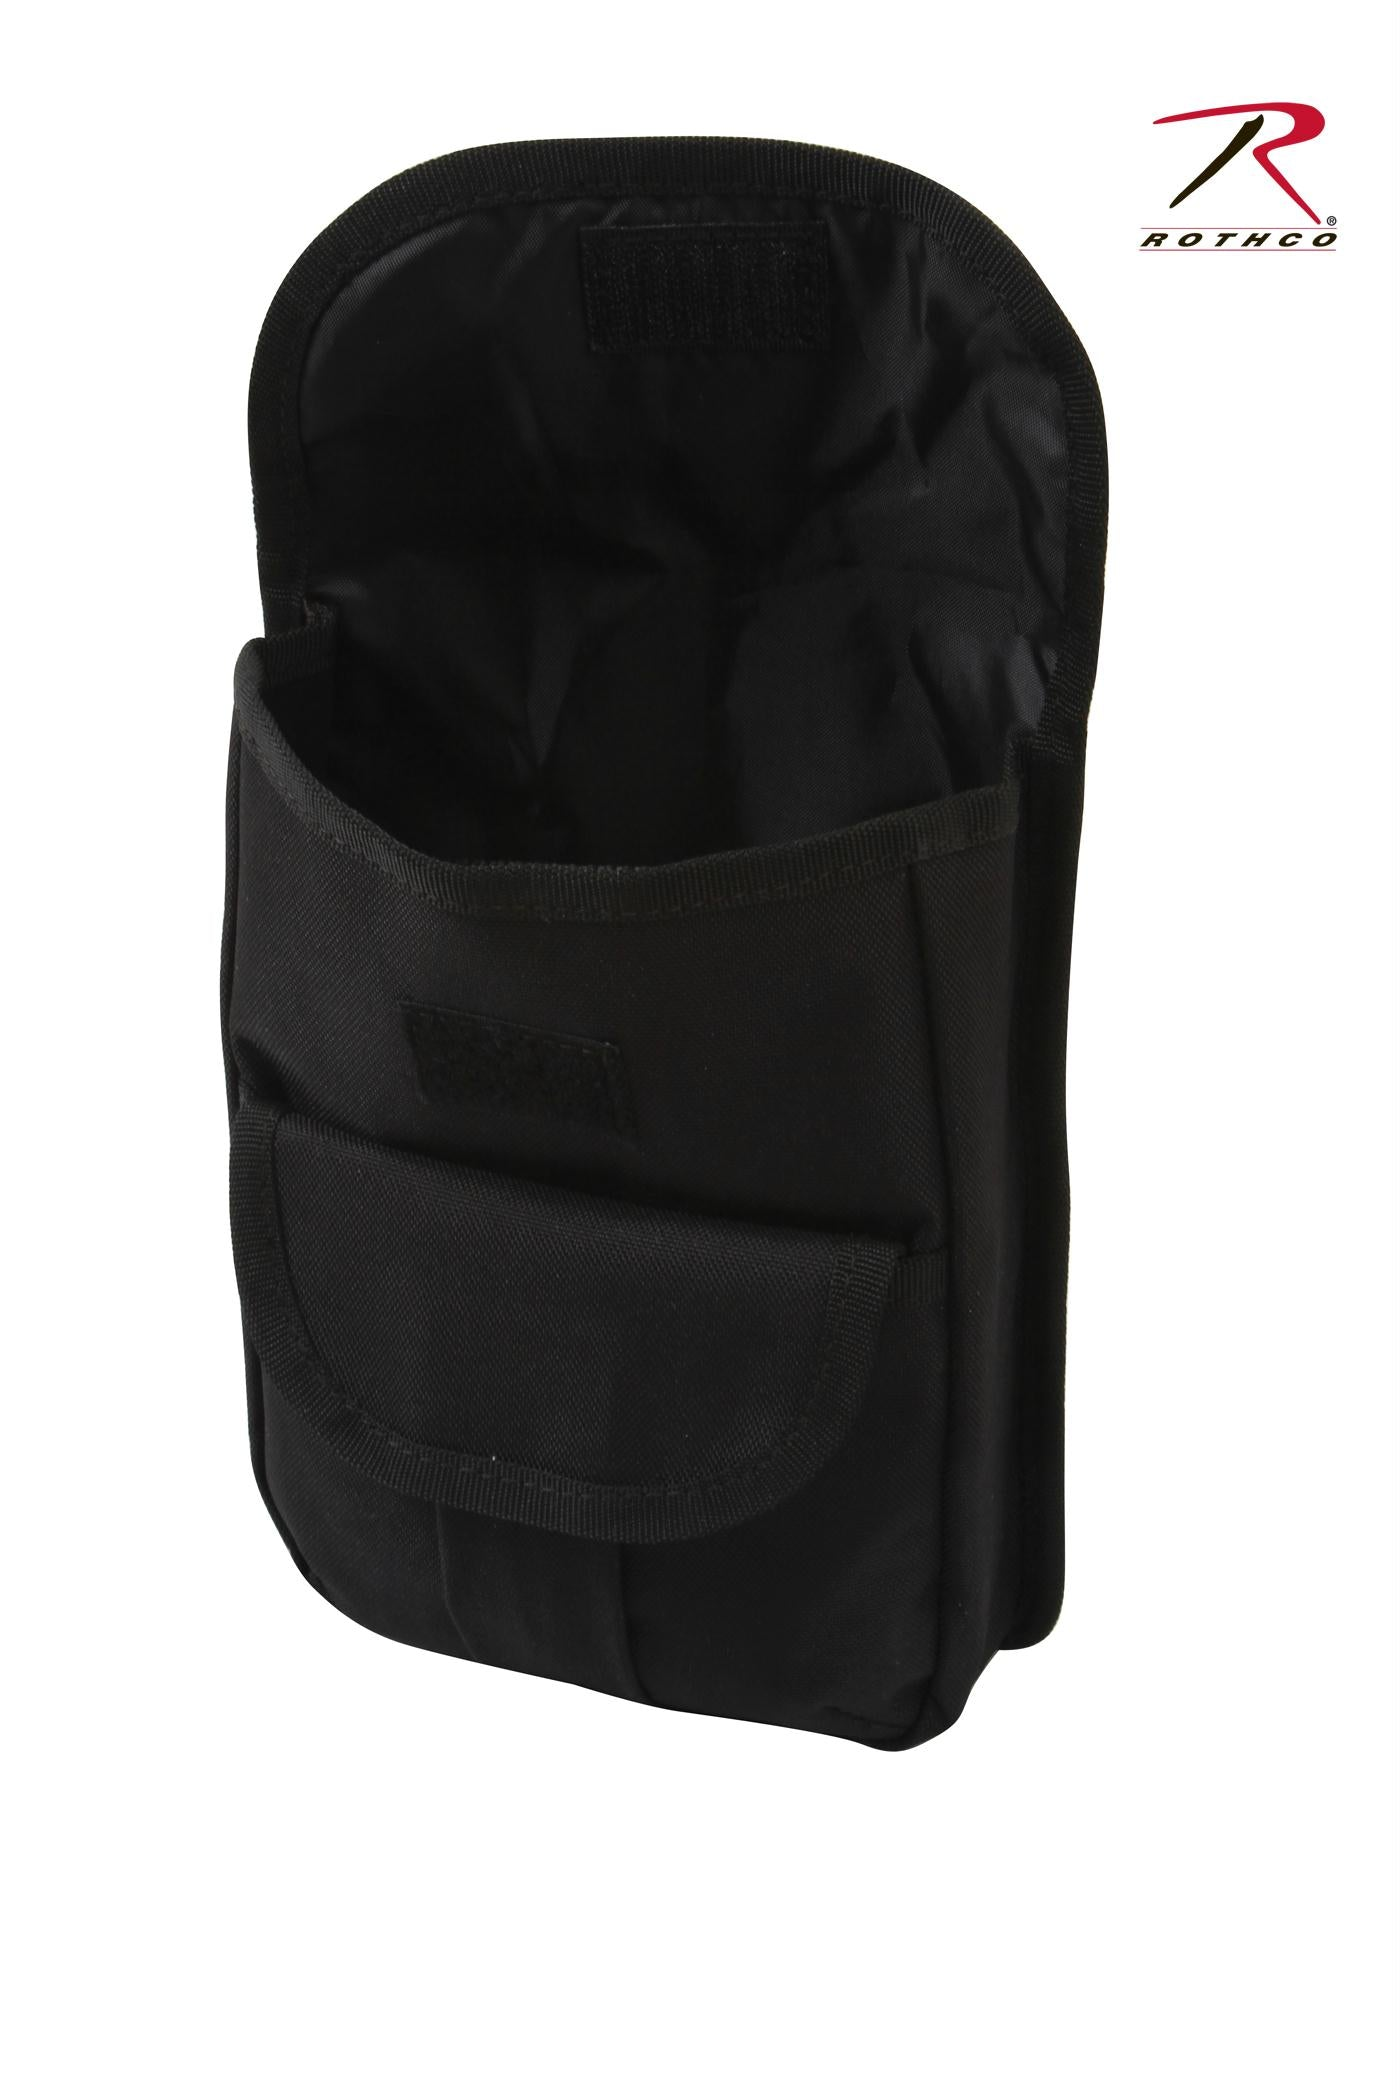 Rothco MOLLE 2 Pocket Ammo Pouch - Black